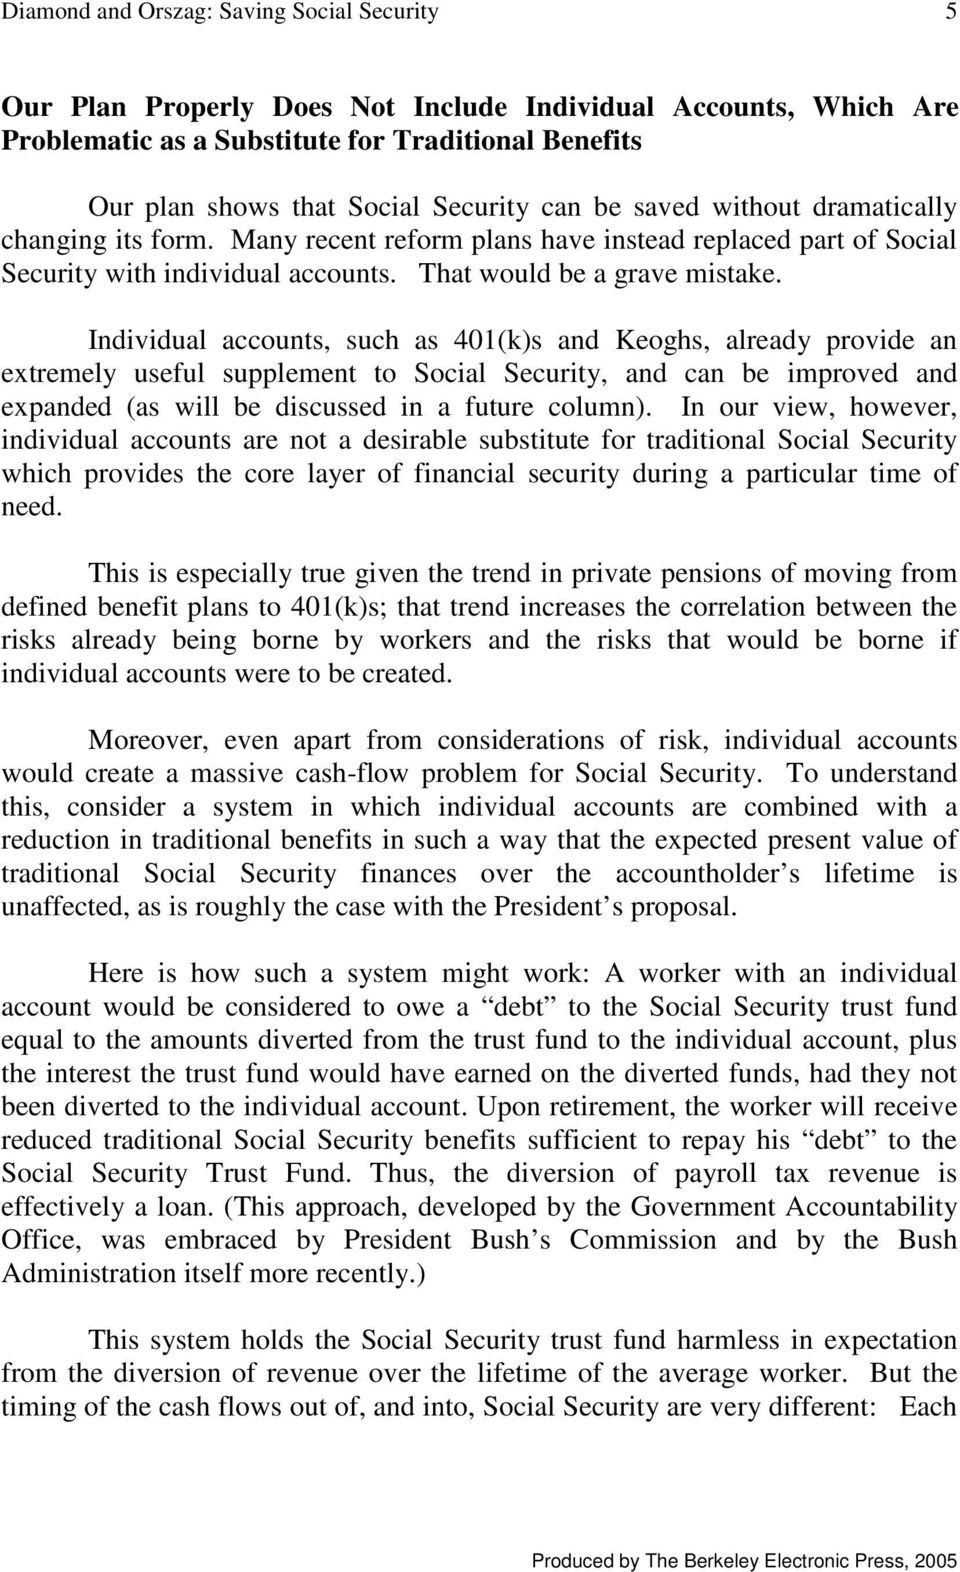 Individual accounts, such as 401(k)s and Keoghs, already provide an extremely useful supplement to Social Security, and can be improved and expanded (as will be discussed in a future column).